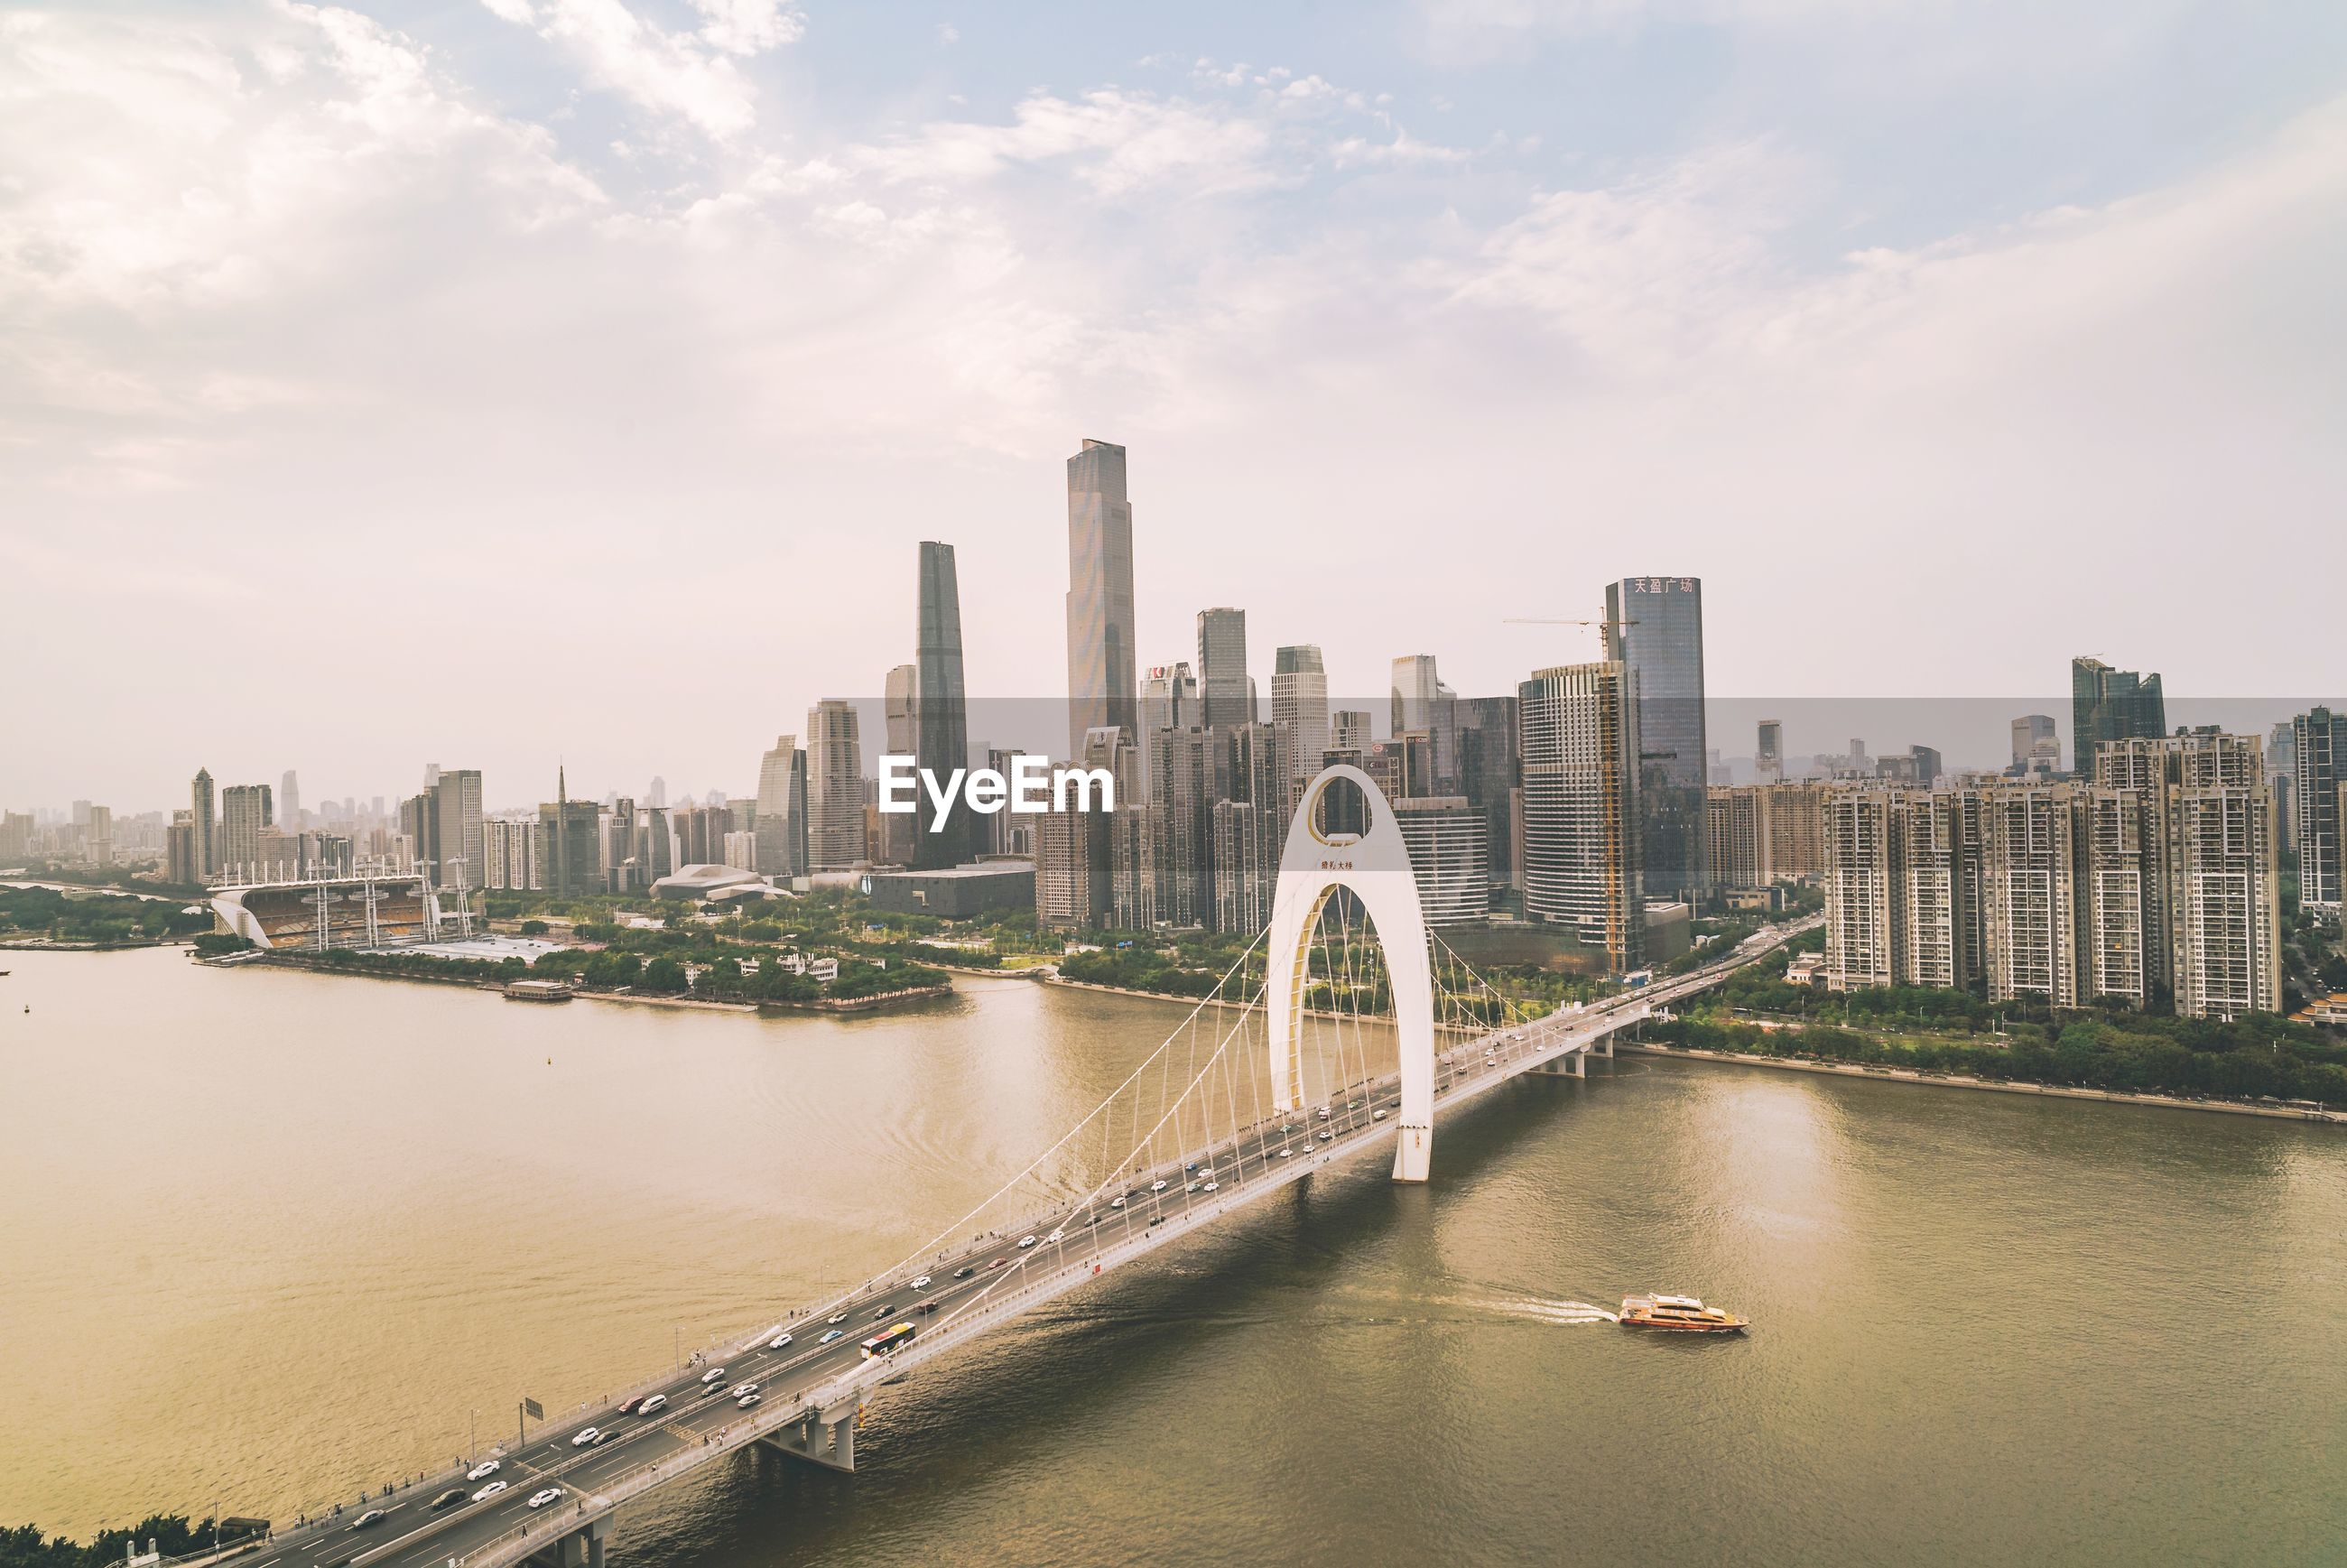 Bridge over river amidst in city against sky